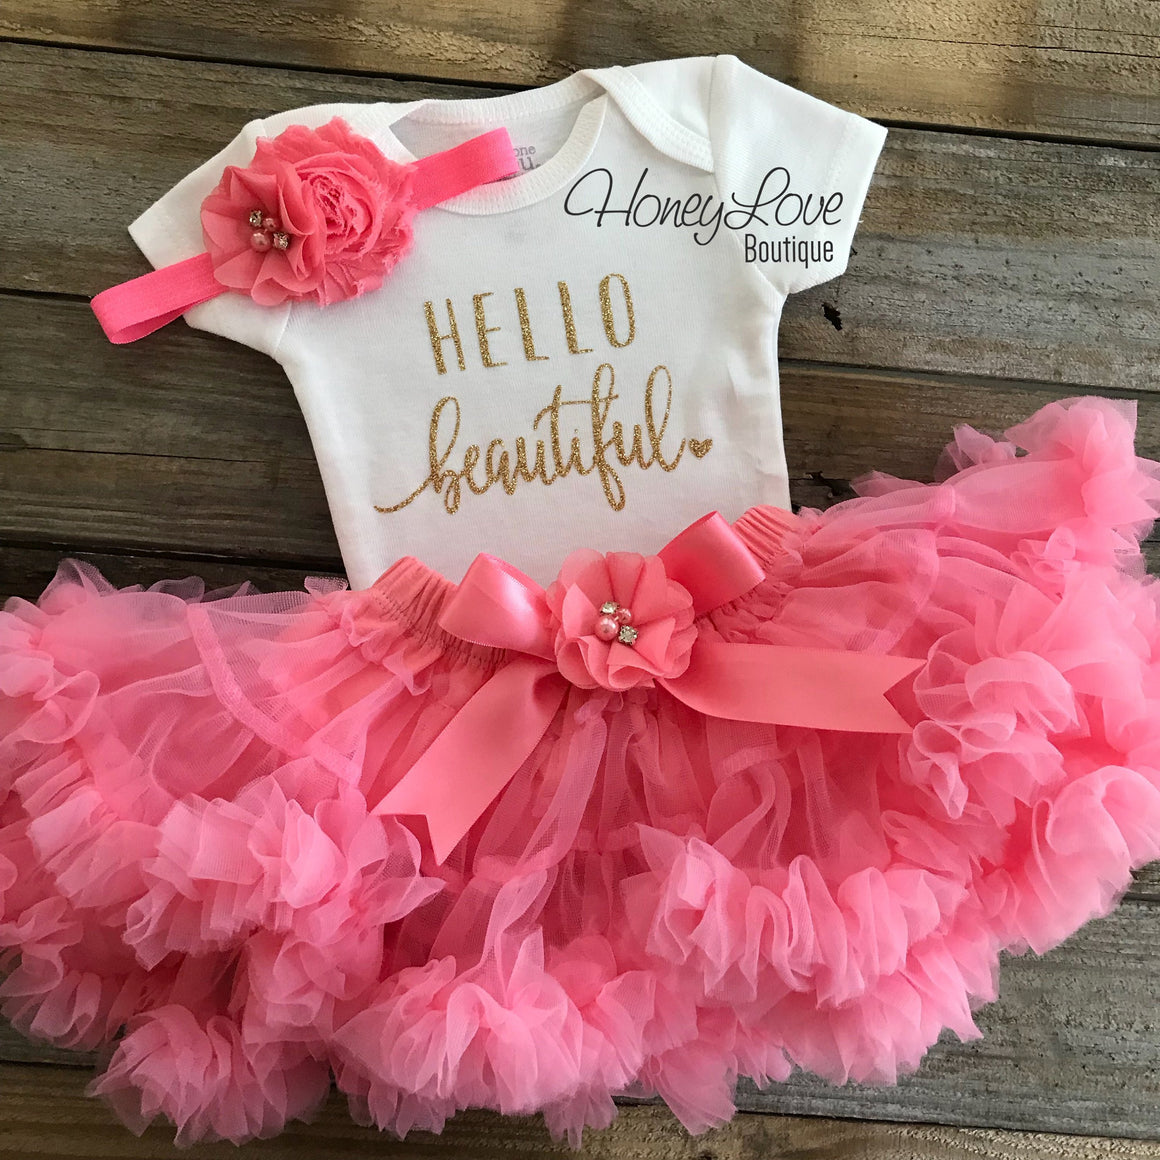 Hello Beautiful newborn baby girl coming home outfit set, take home hospital clothing, gold silver glitter, coral light pink pettiskirt tutu - HoneyLoveBoutique